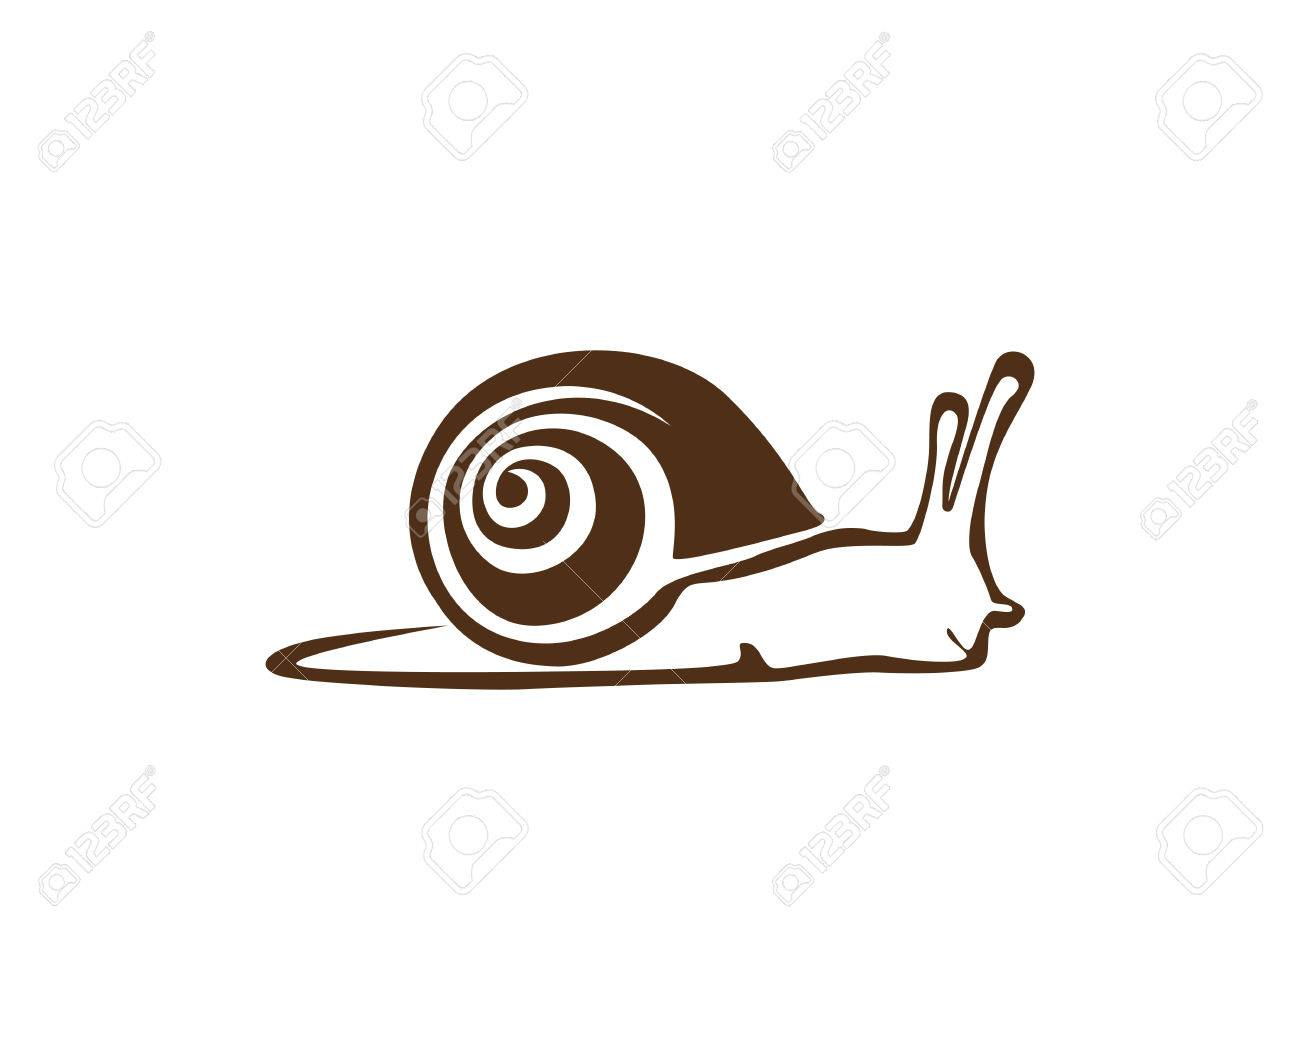 snail logo template royalty free cliparts vectors and stock